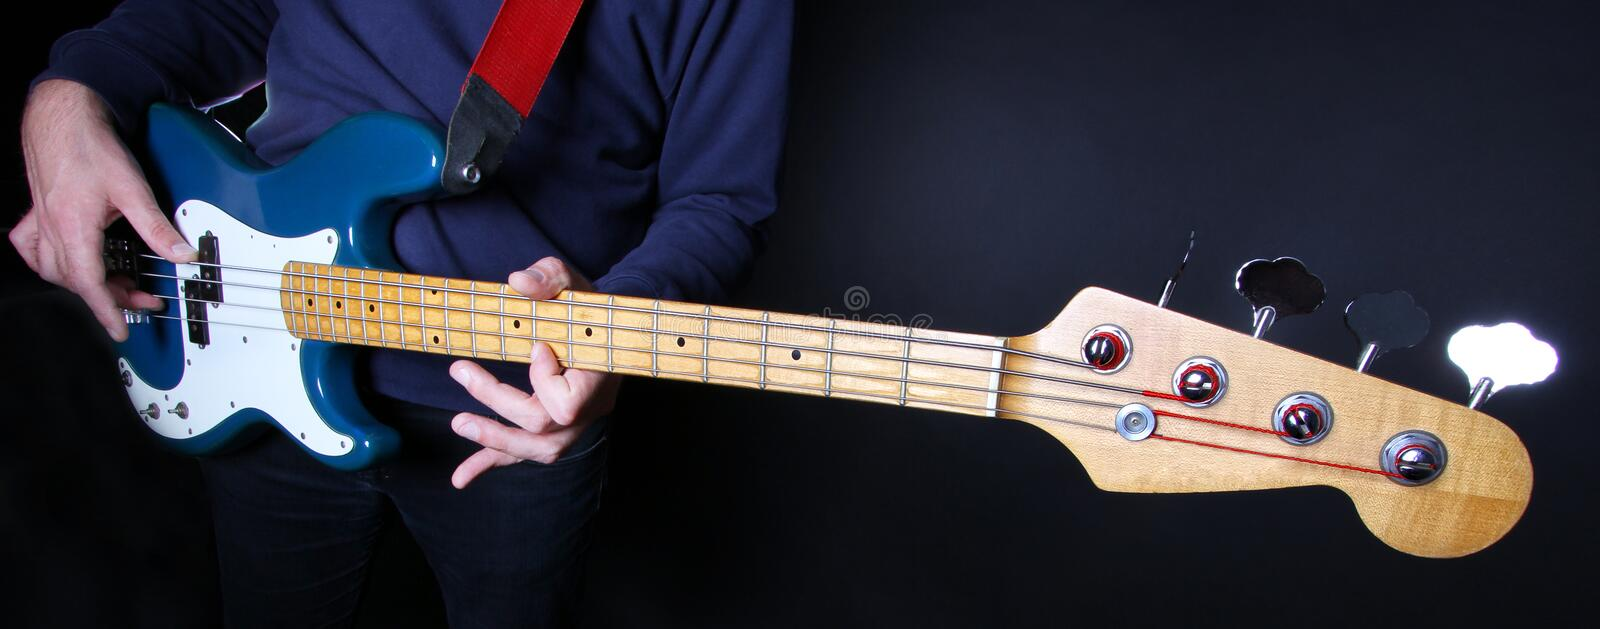 Bass guitar player. Man playing bass guitar on black background royalty free stock images